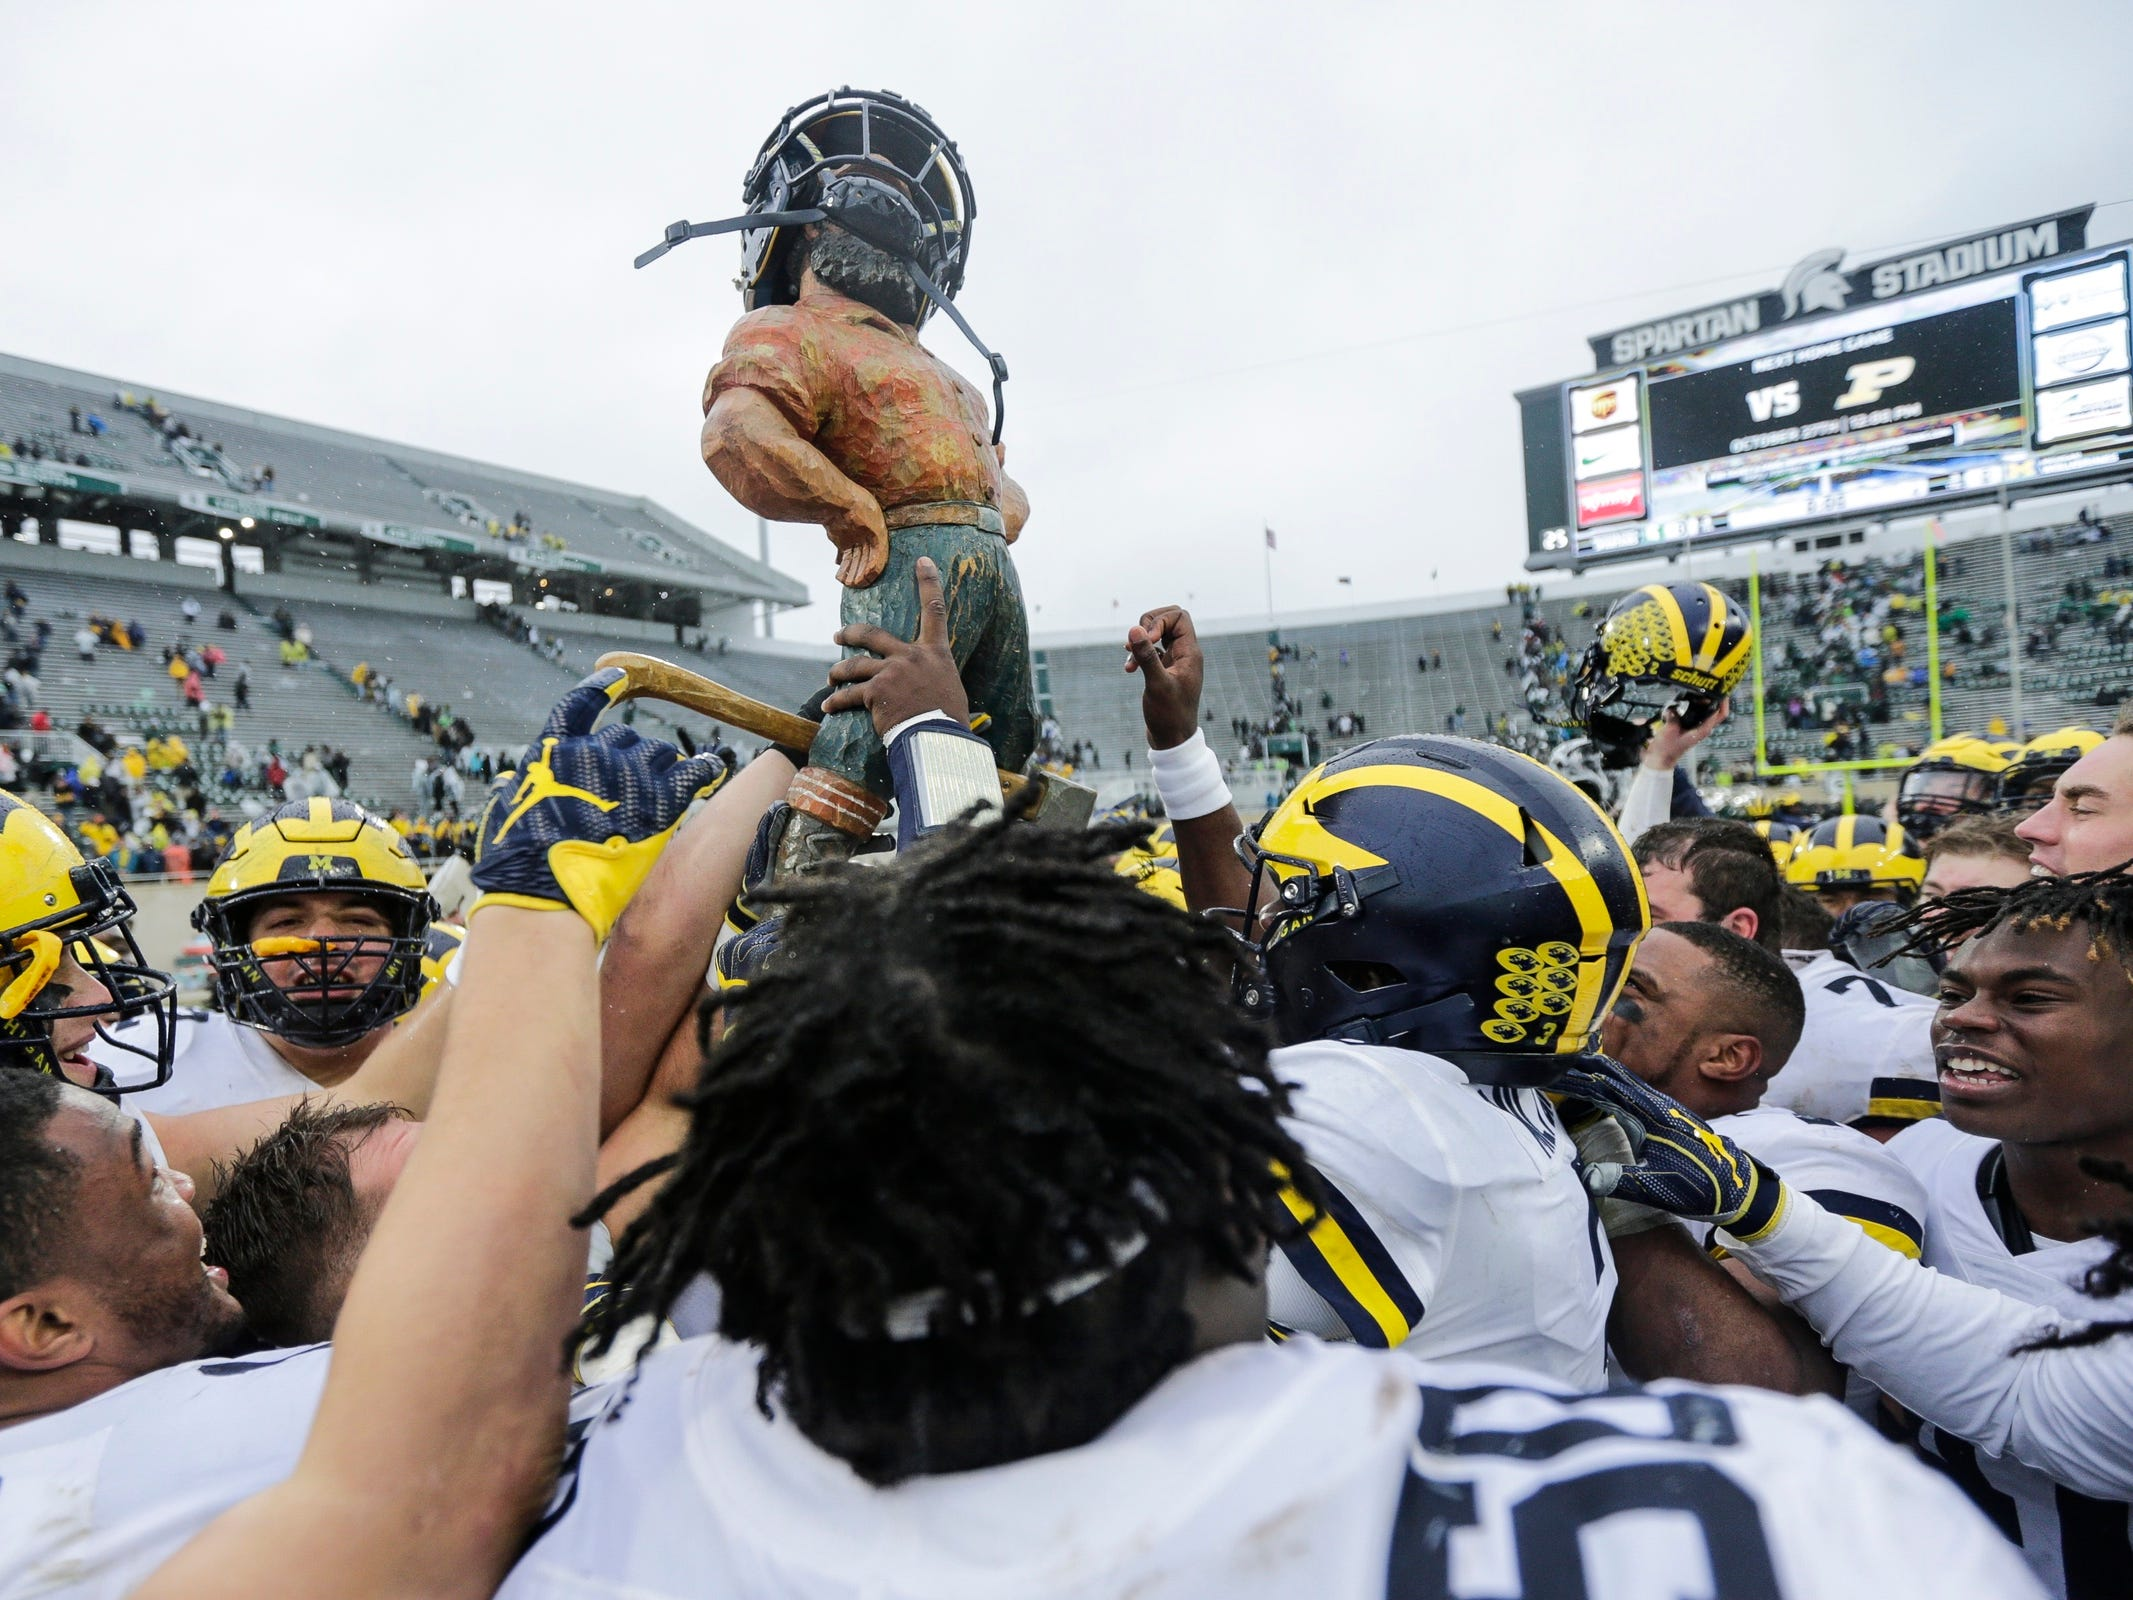 Michigan players raise the Paul Bunyan trophy to celebrate their 21-7 victory over Michigan State at Spartan Stadium in East Lansing, Saturday, October 20, 2018.